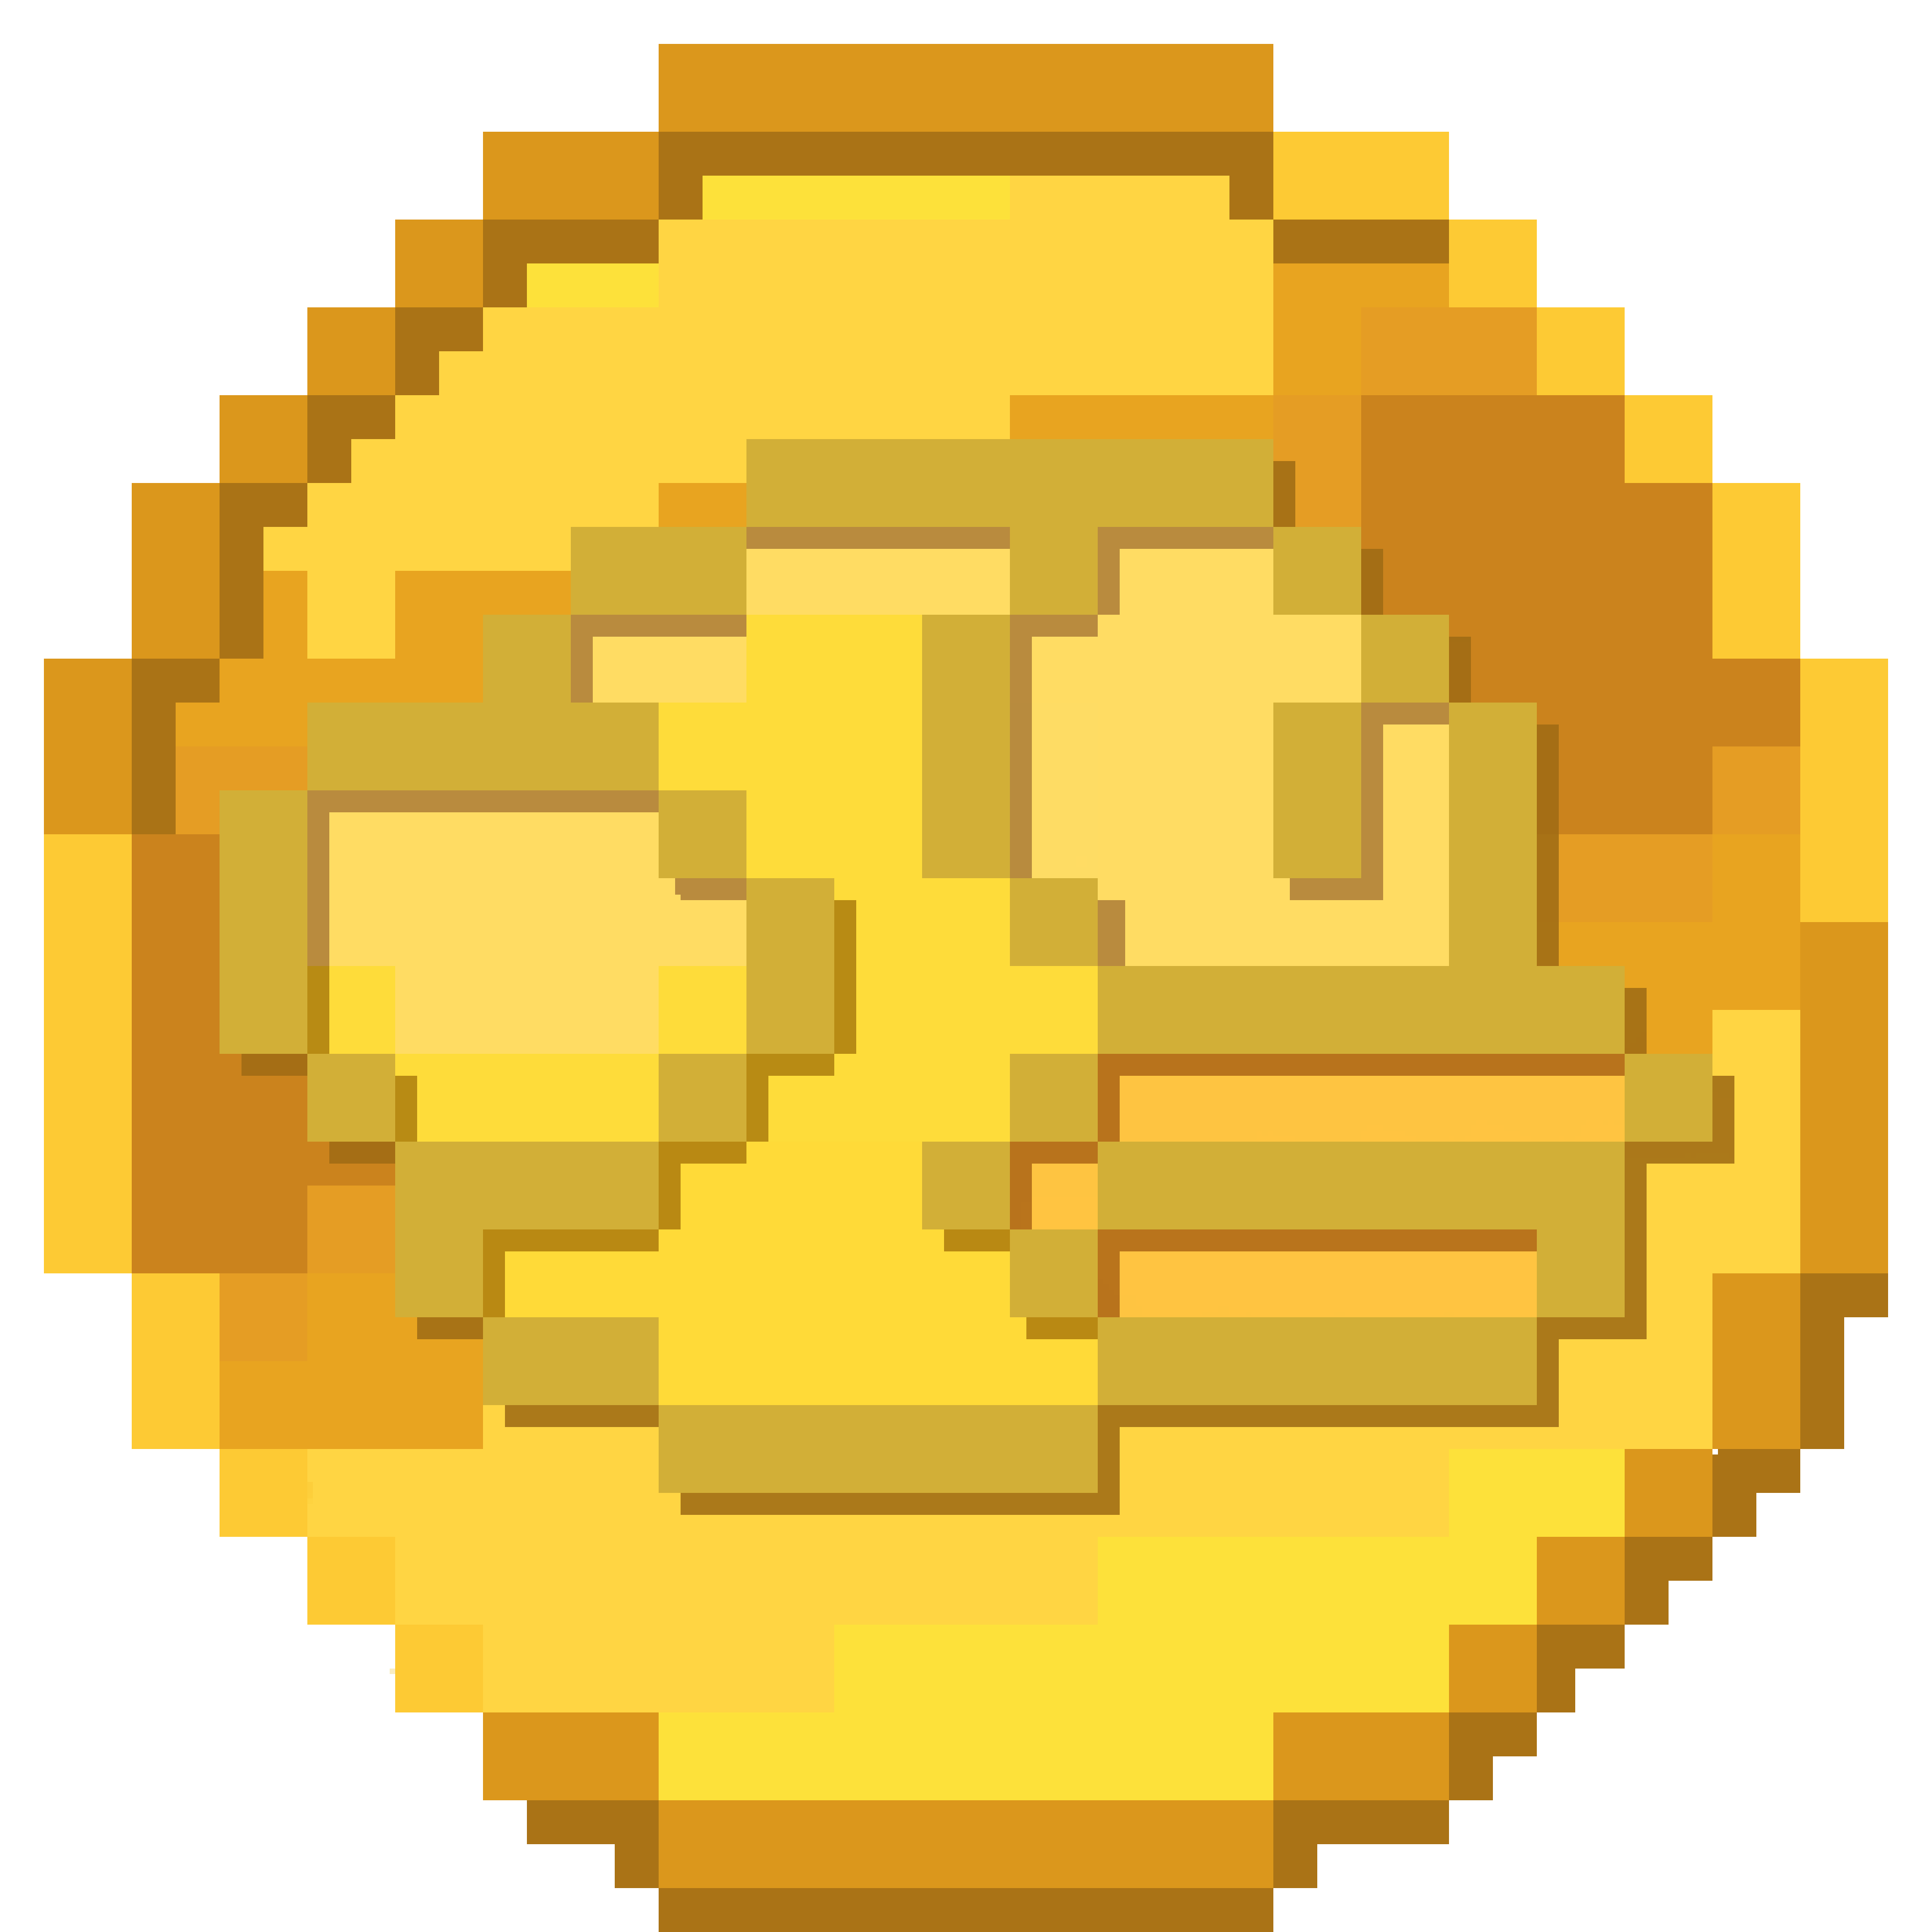 Pixel coin png. New logo for flappycoin